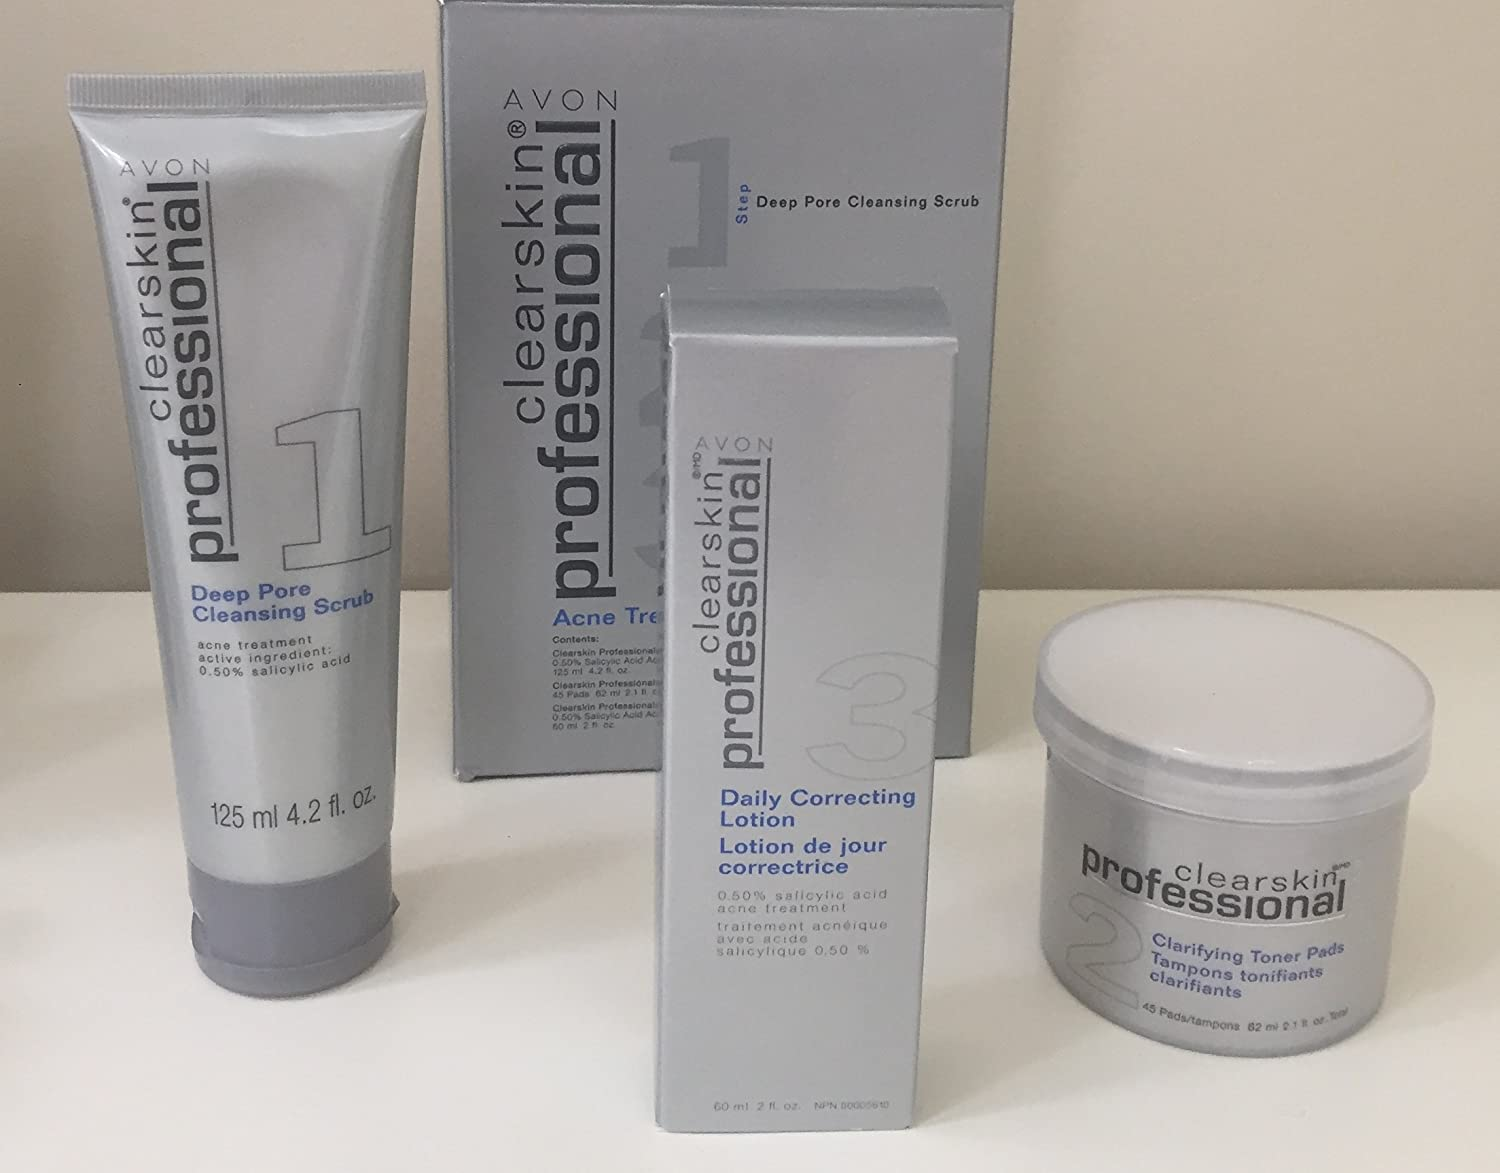 Max 88% OFF Avon Ranking integrated 1st place Clearskin Professional System Treatment Acne